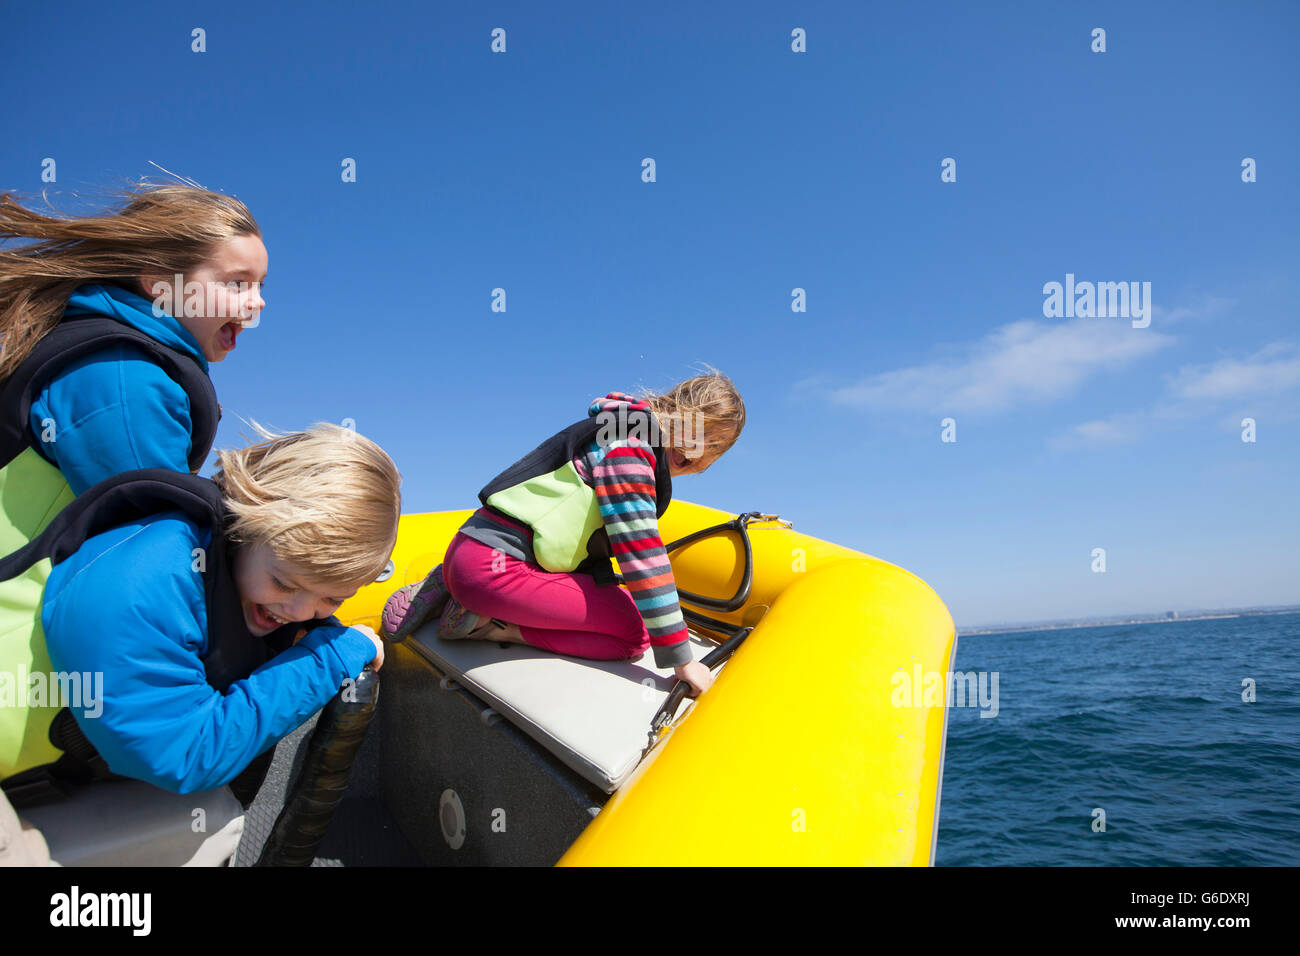 Three children ages 5, 8, and 9 loving the thrill of the ride with Xplore Offshore, San Diego's original ocean - Stock Image